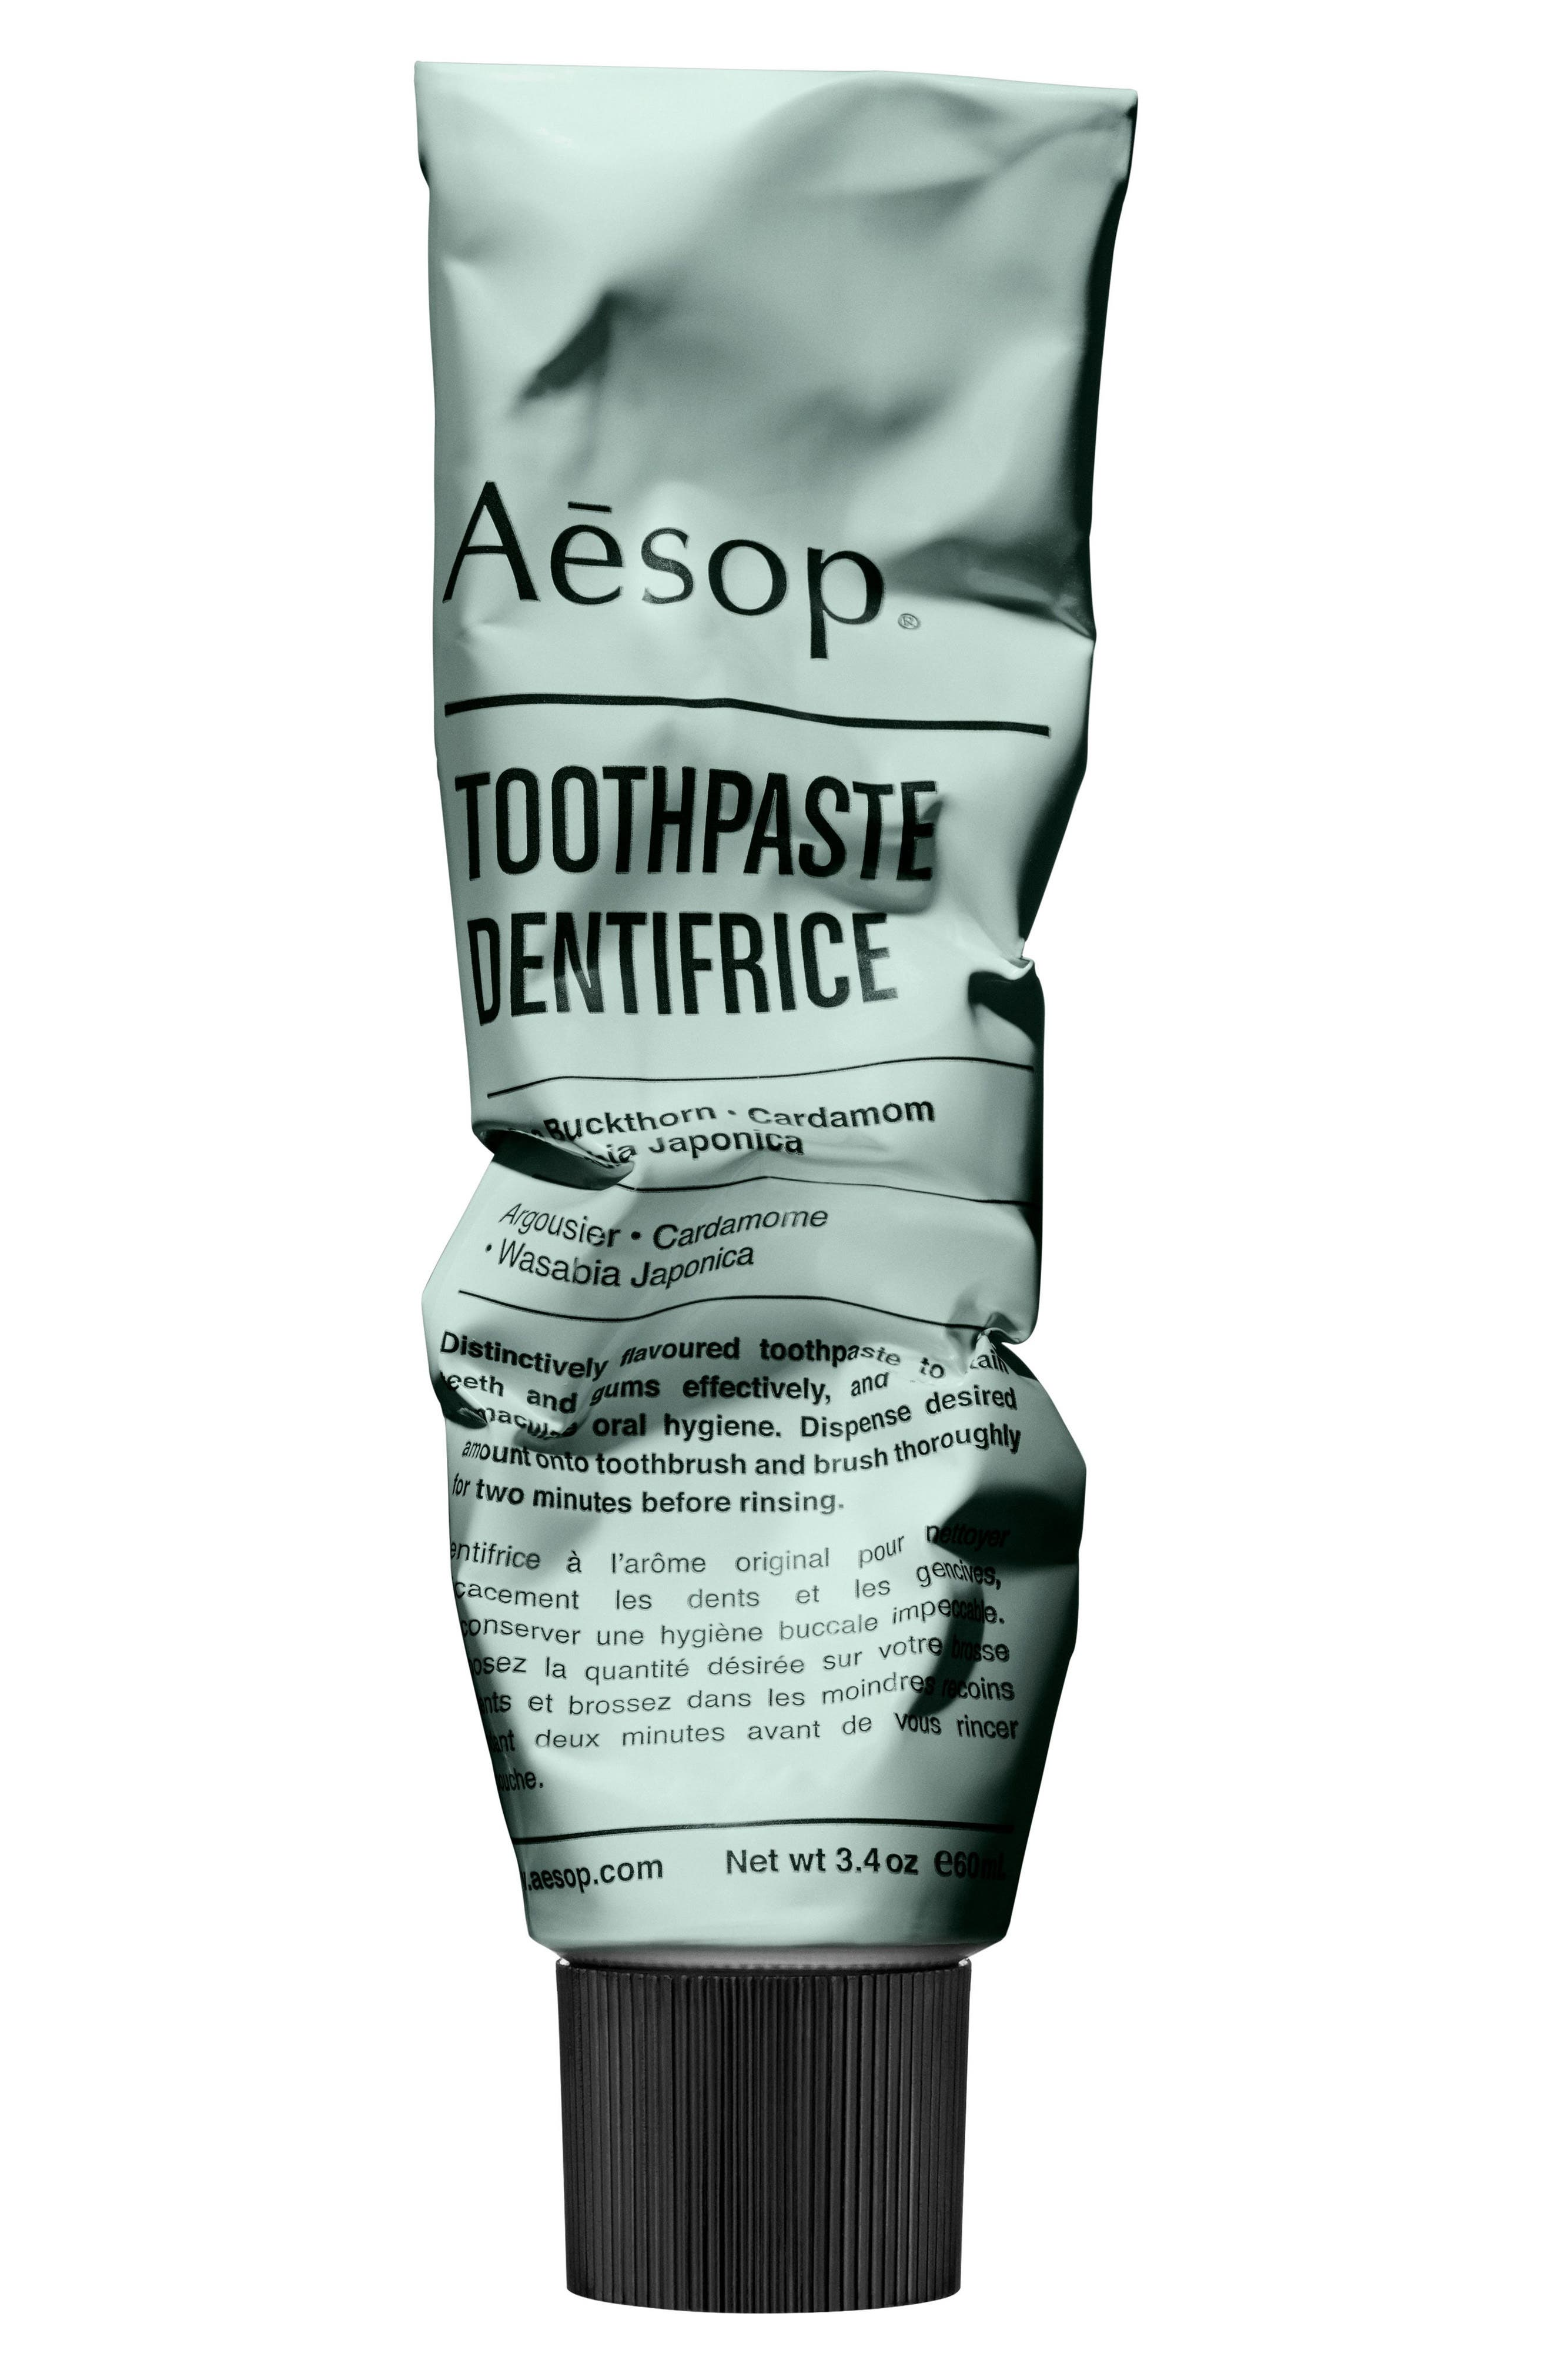 Alternate Image 1 Selected - Aesop Toothpaste